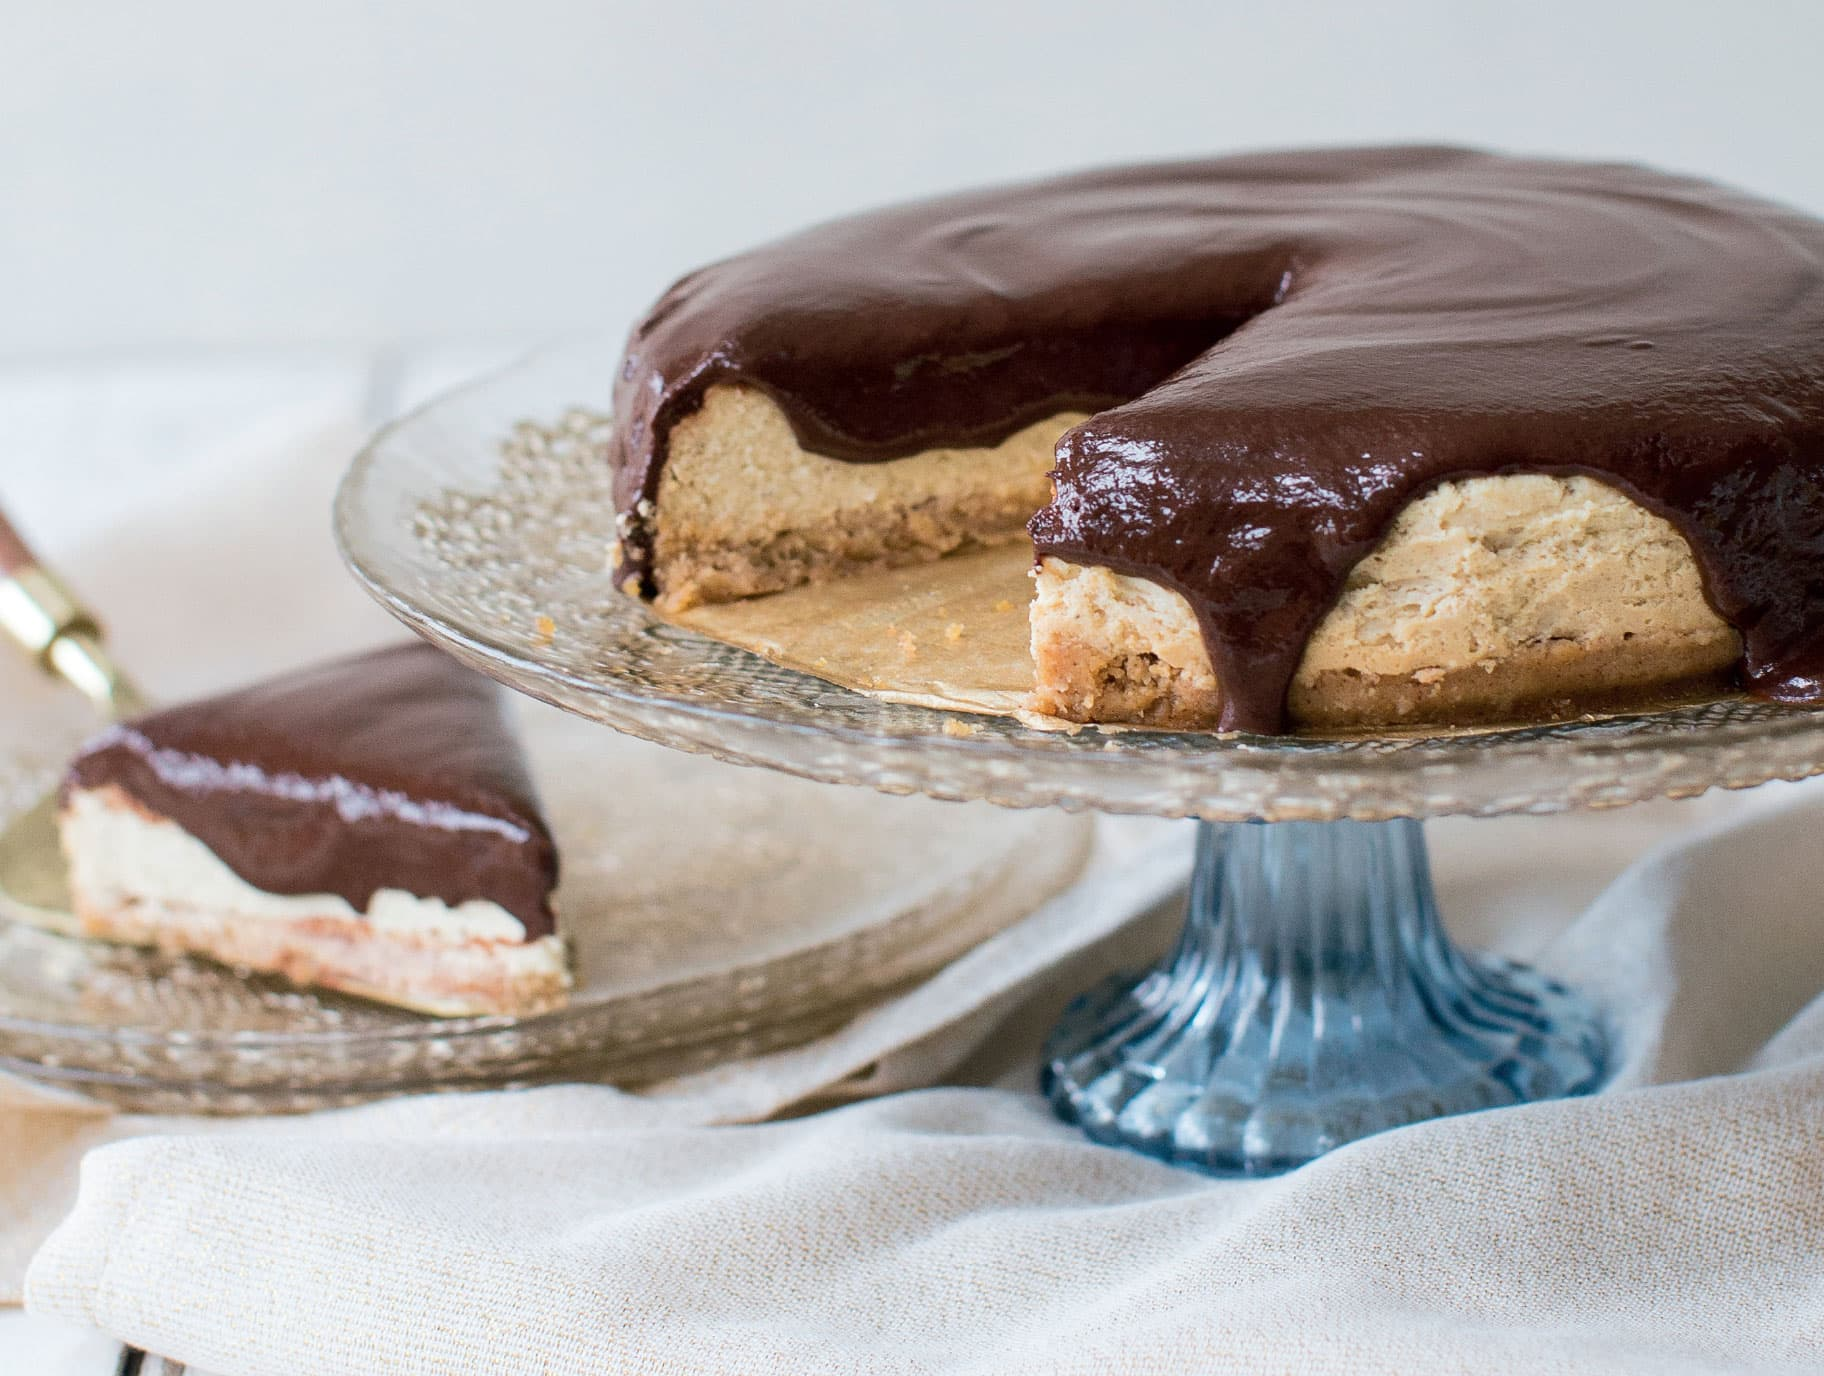 New York Cheesecake with Chocolate Ganache